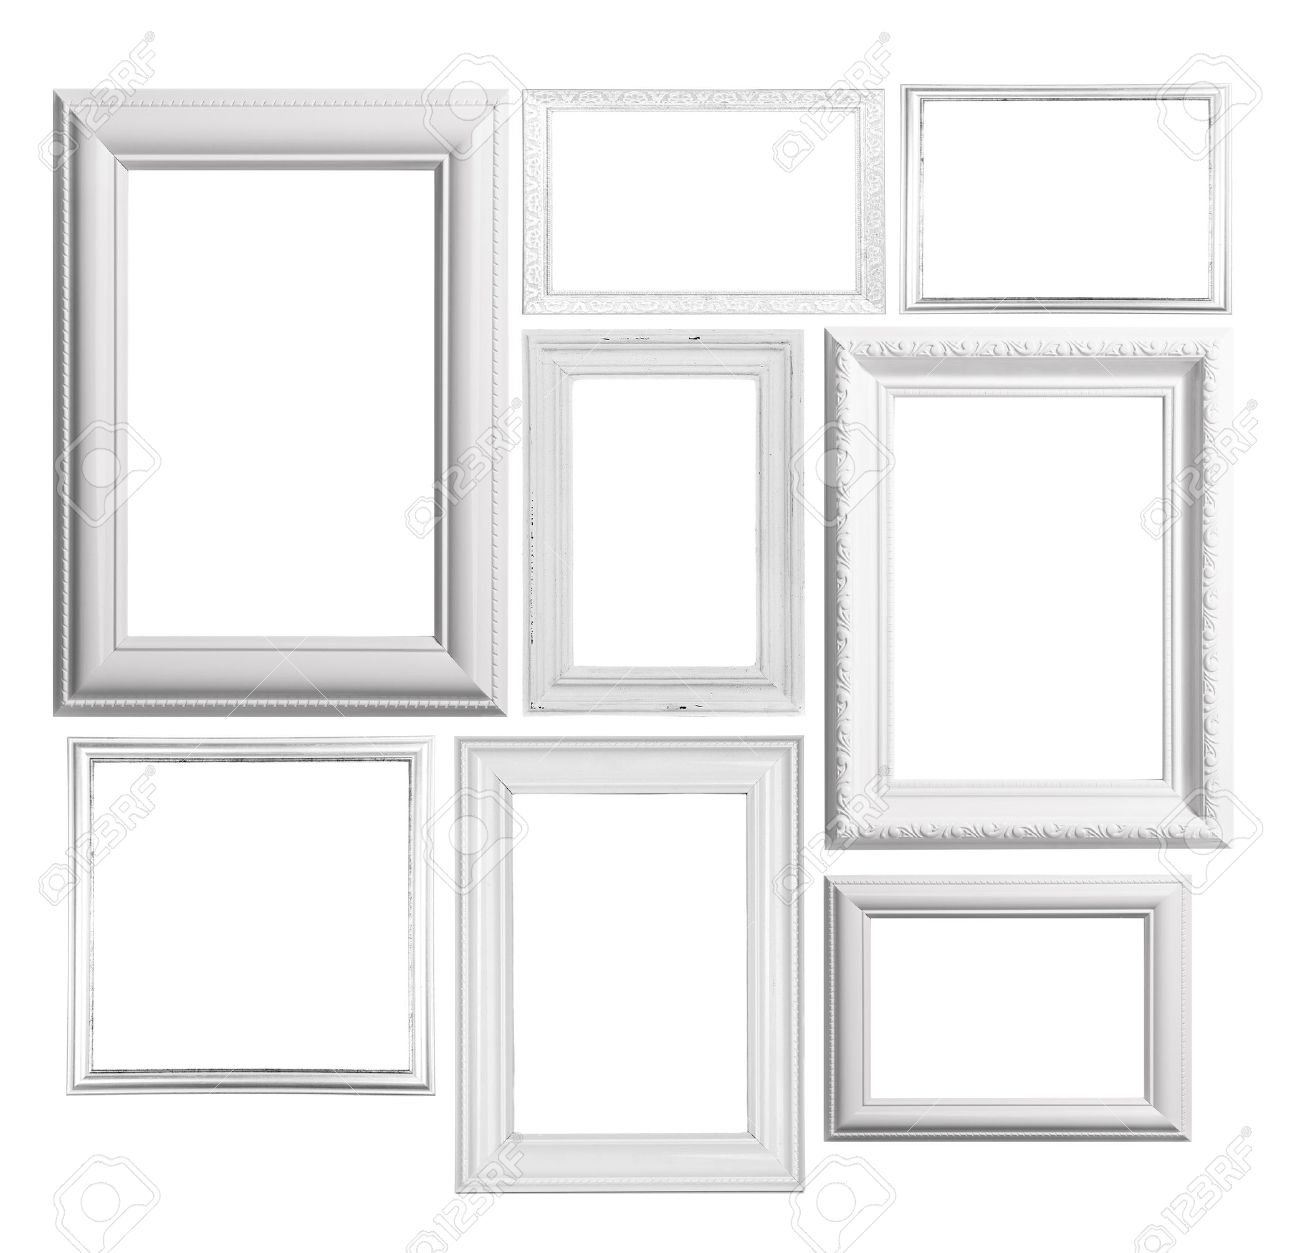 Collage Of Frames Isolated On White Stock Photo, Picture And Royalty ...